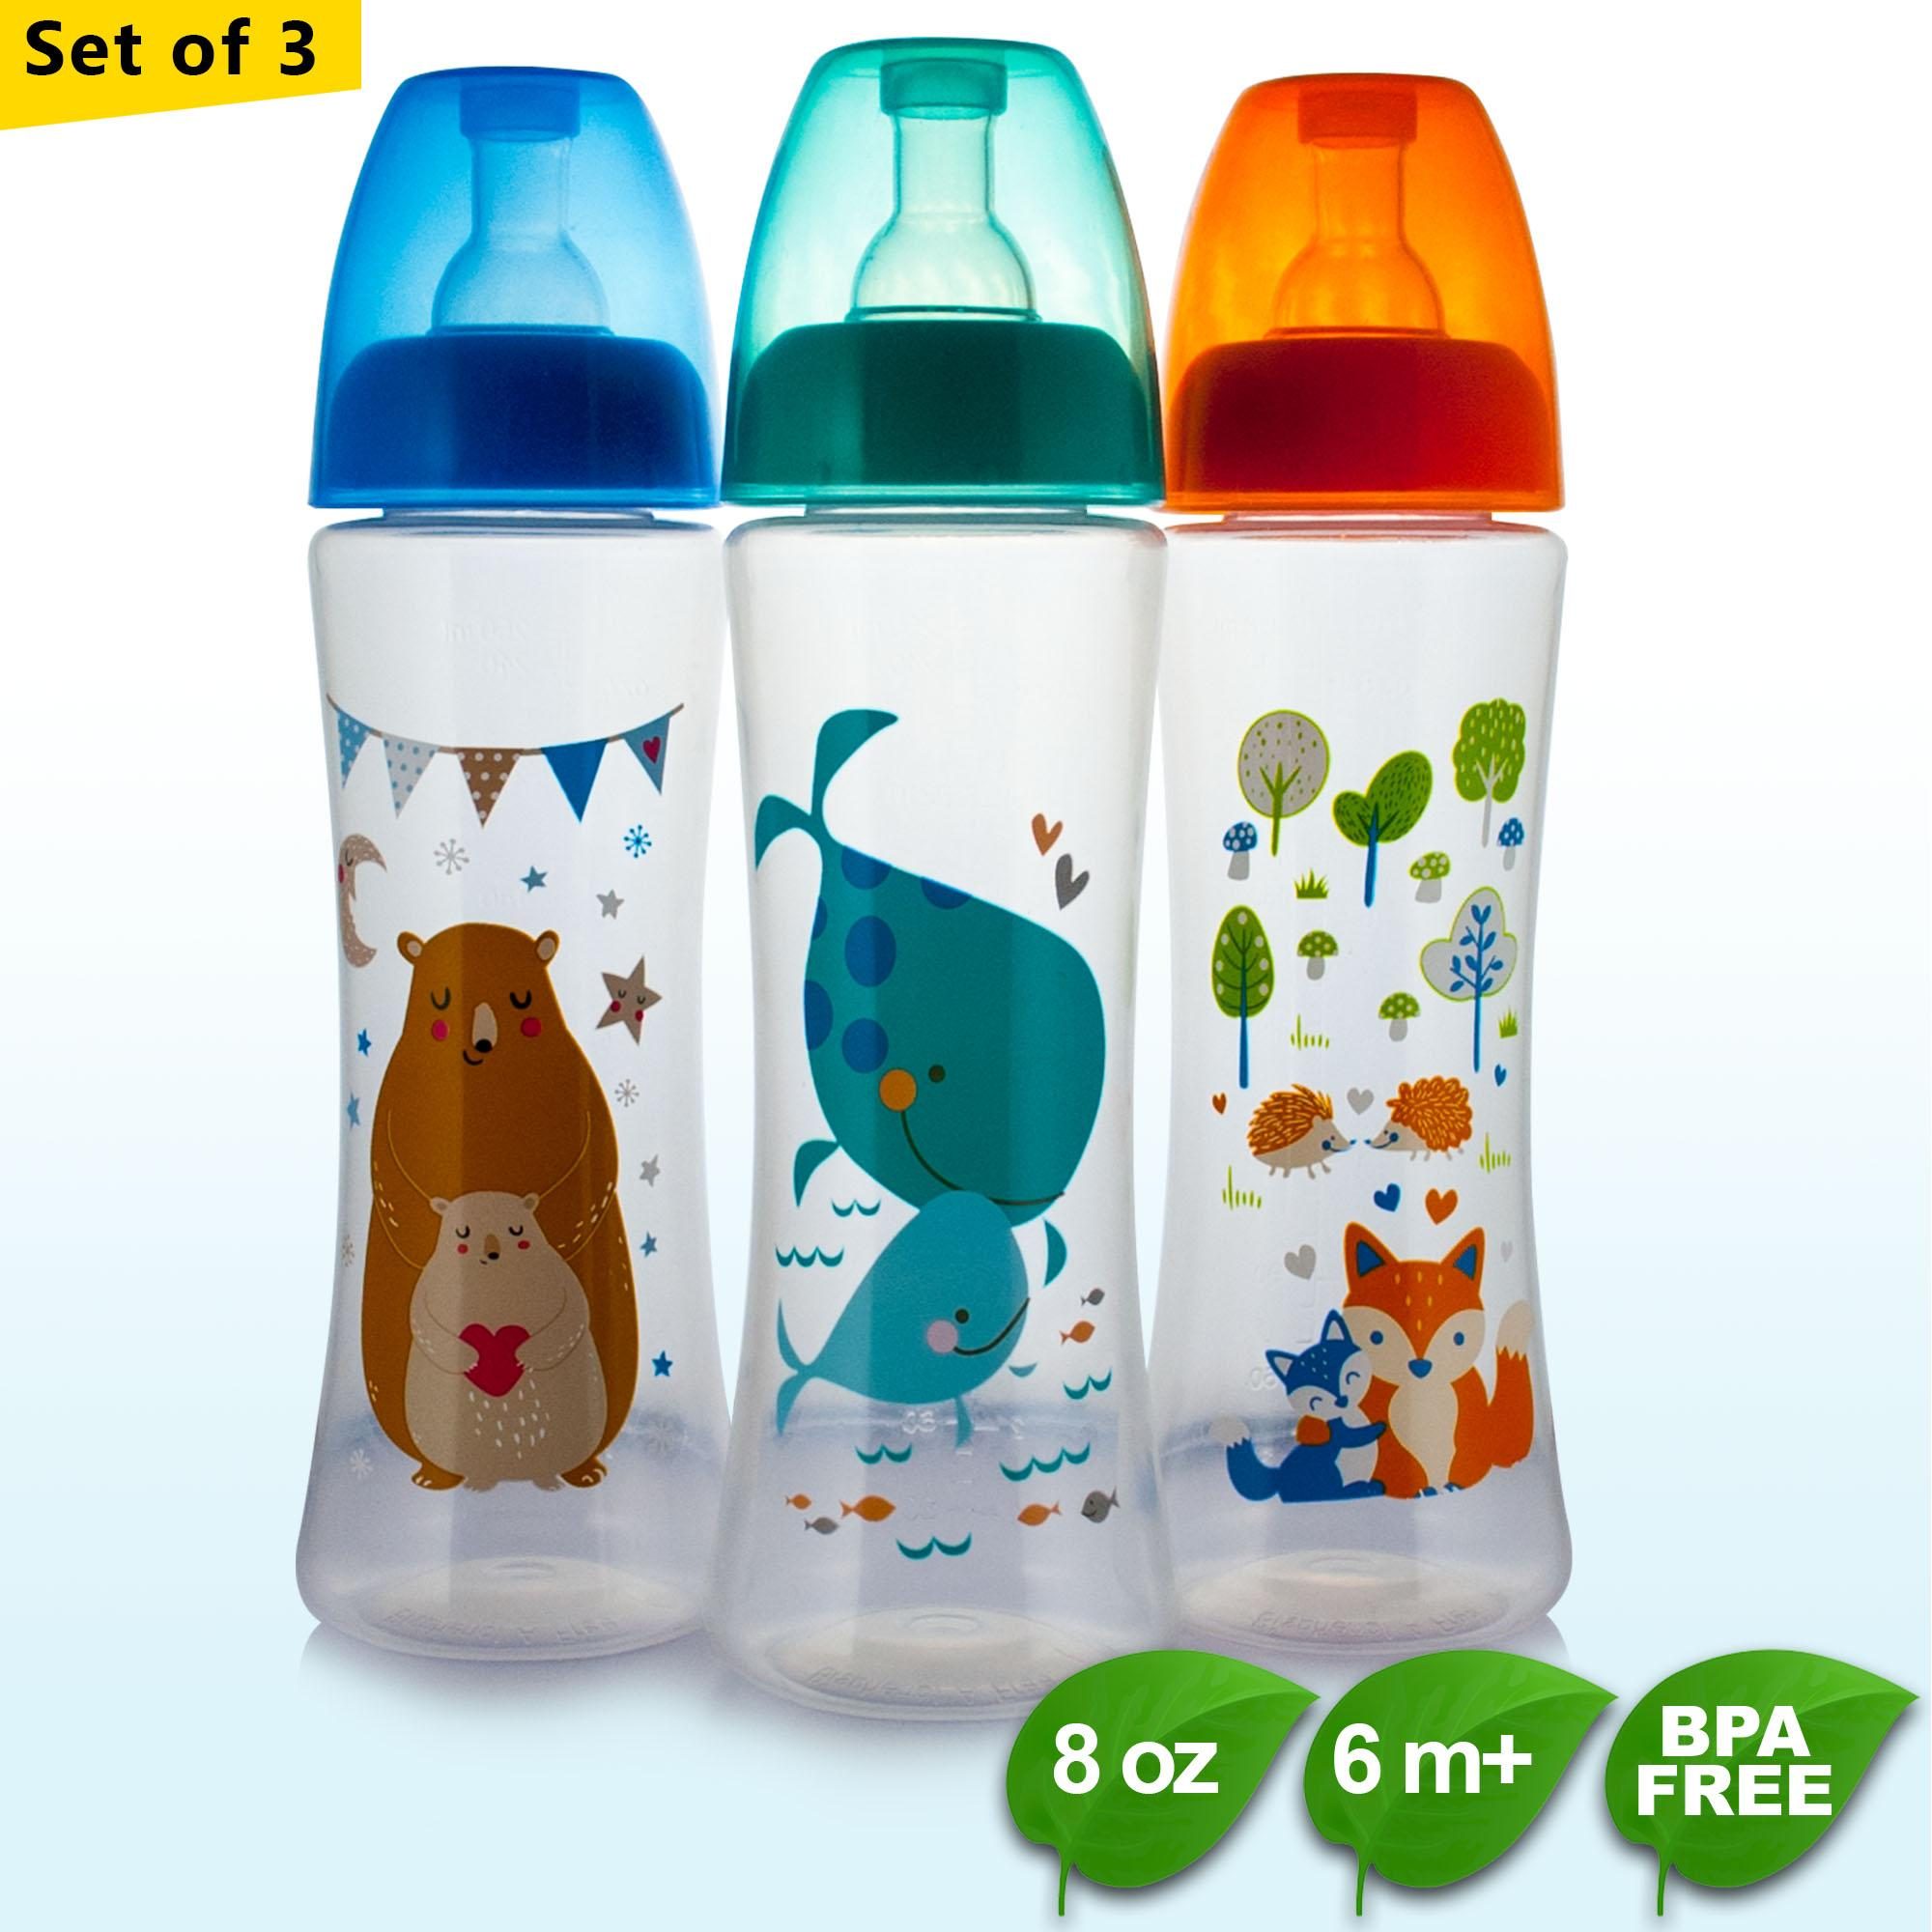 Bpa Free Coral Babies 8oz Feeding Bottles W/ Silicone Nipple By Coral Babies.